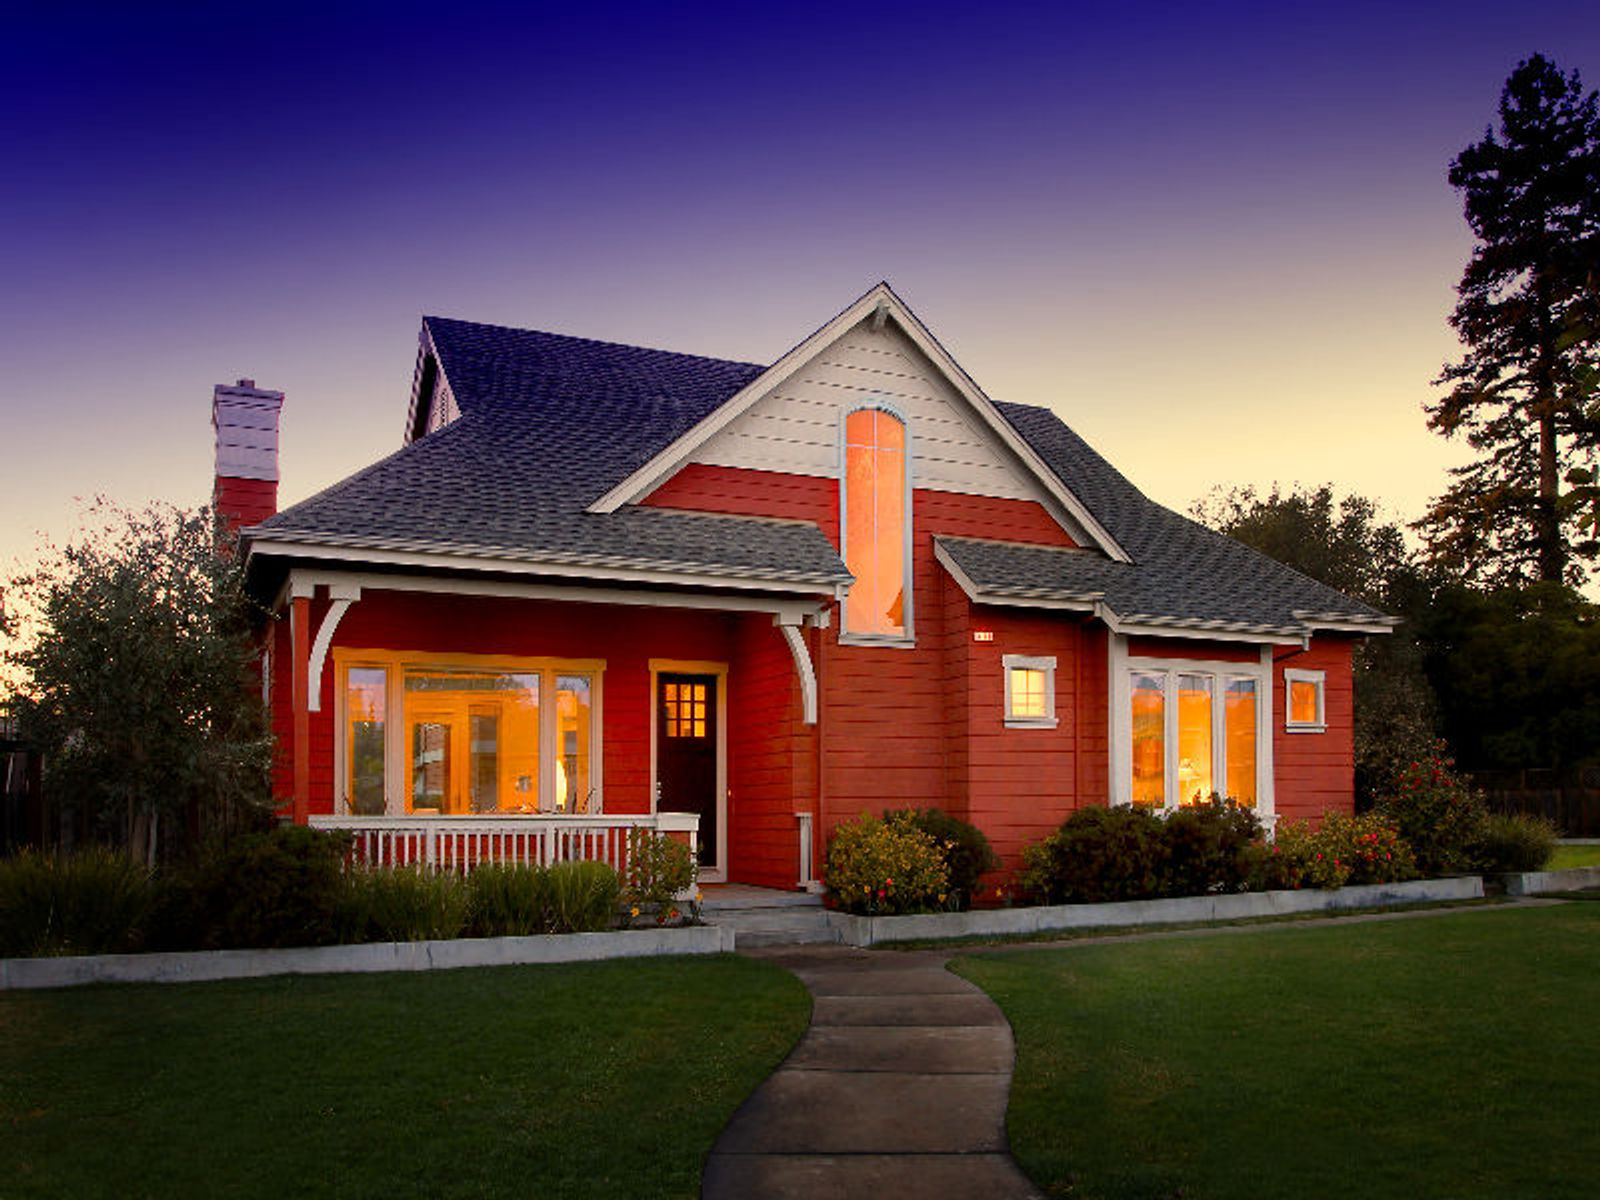 Sonoma Eastside Jewel, Sonoma CA Single Family Home - Sonoma - Napa Real Estate